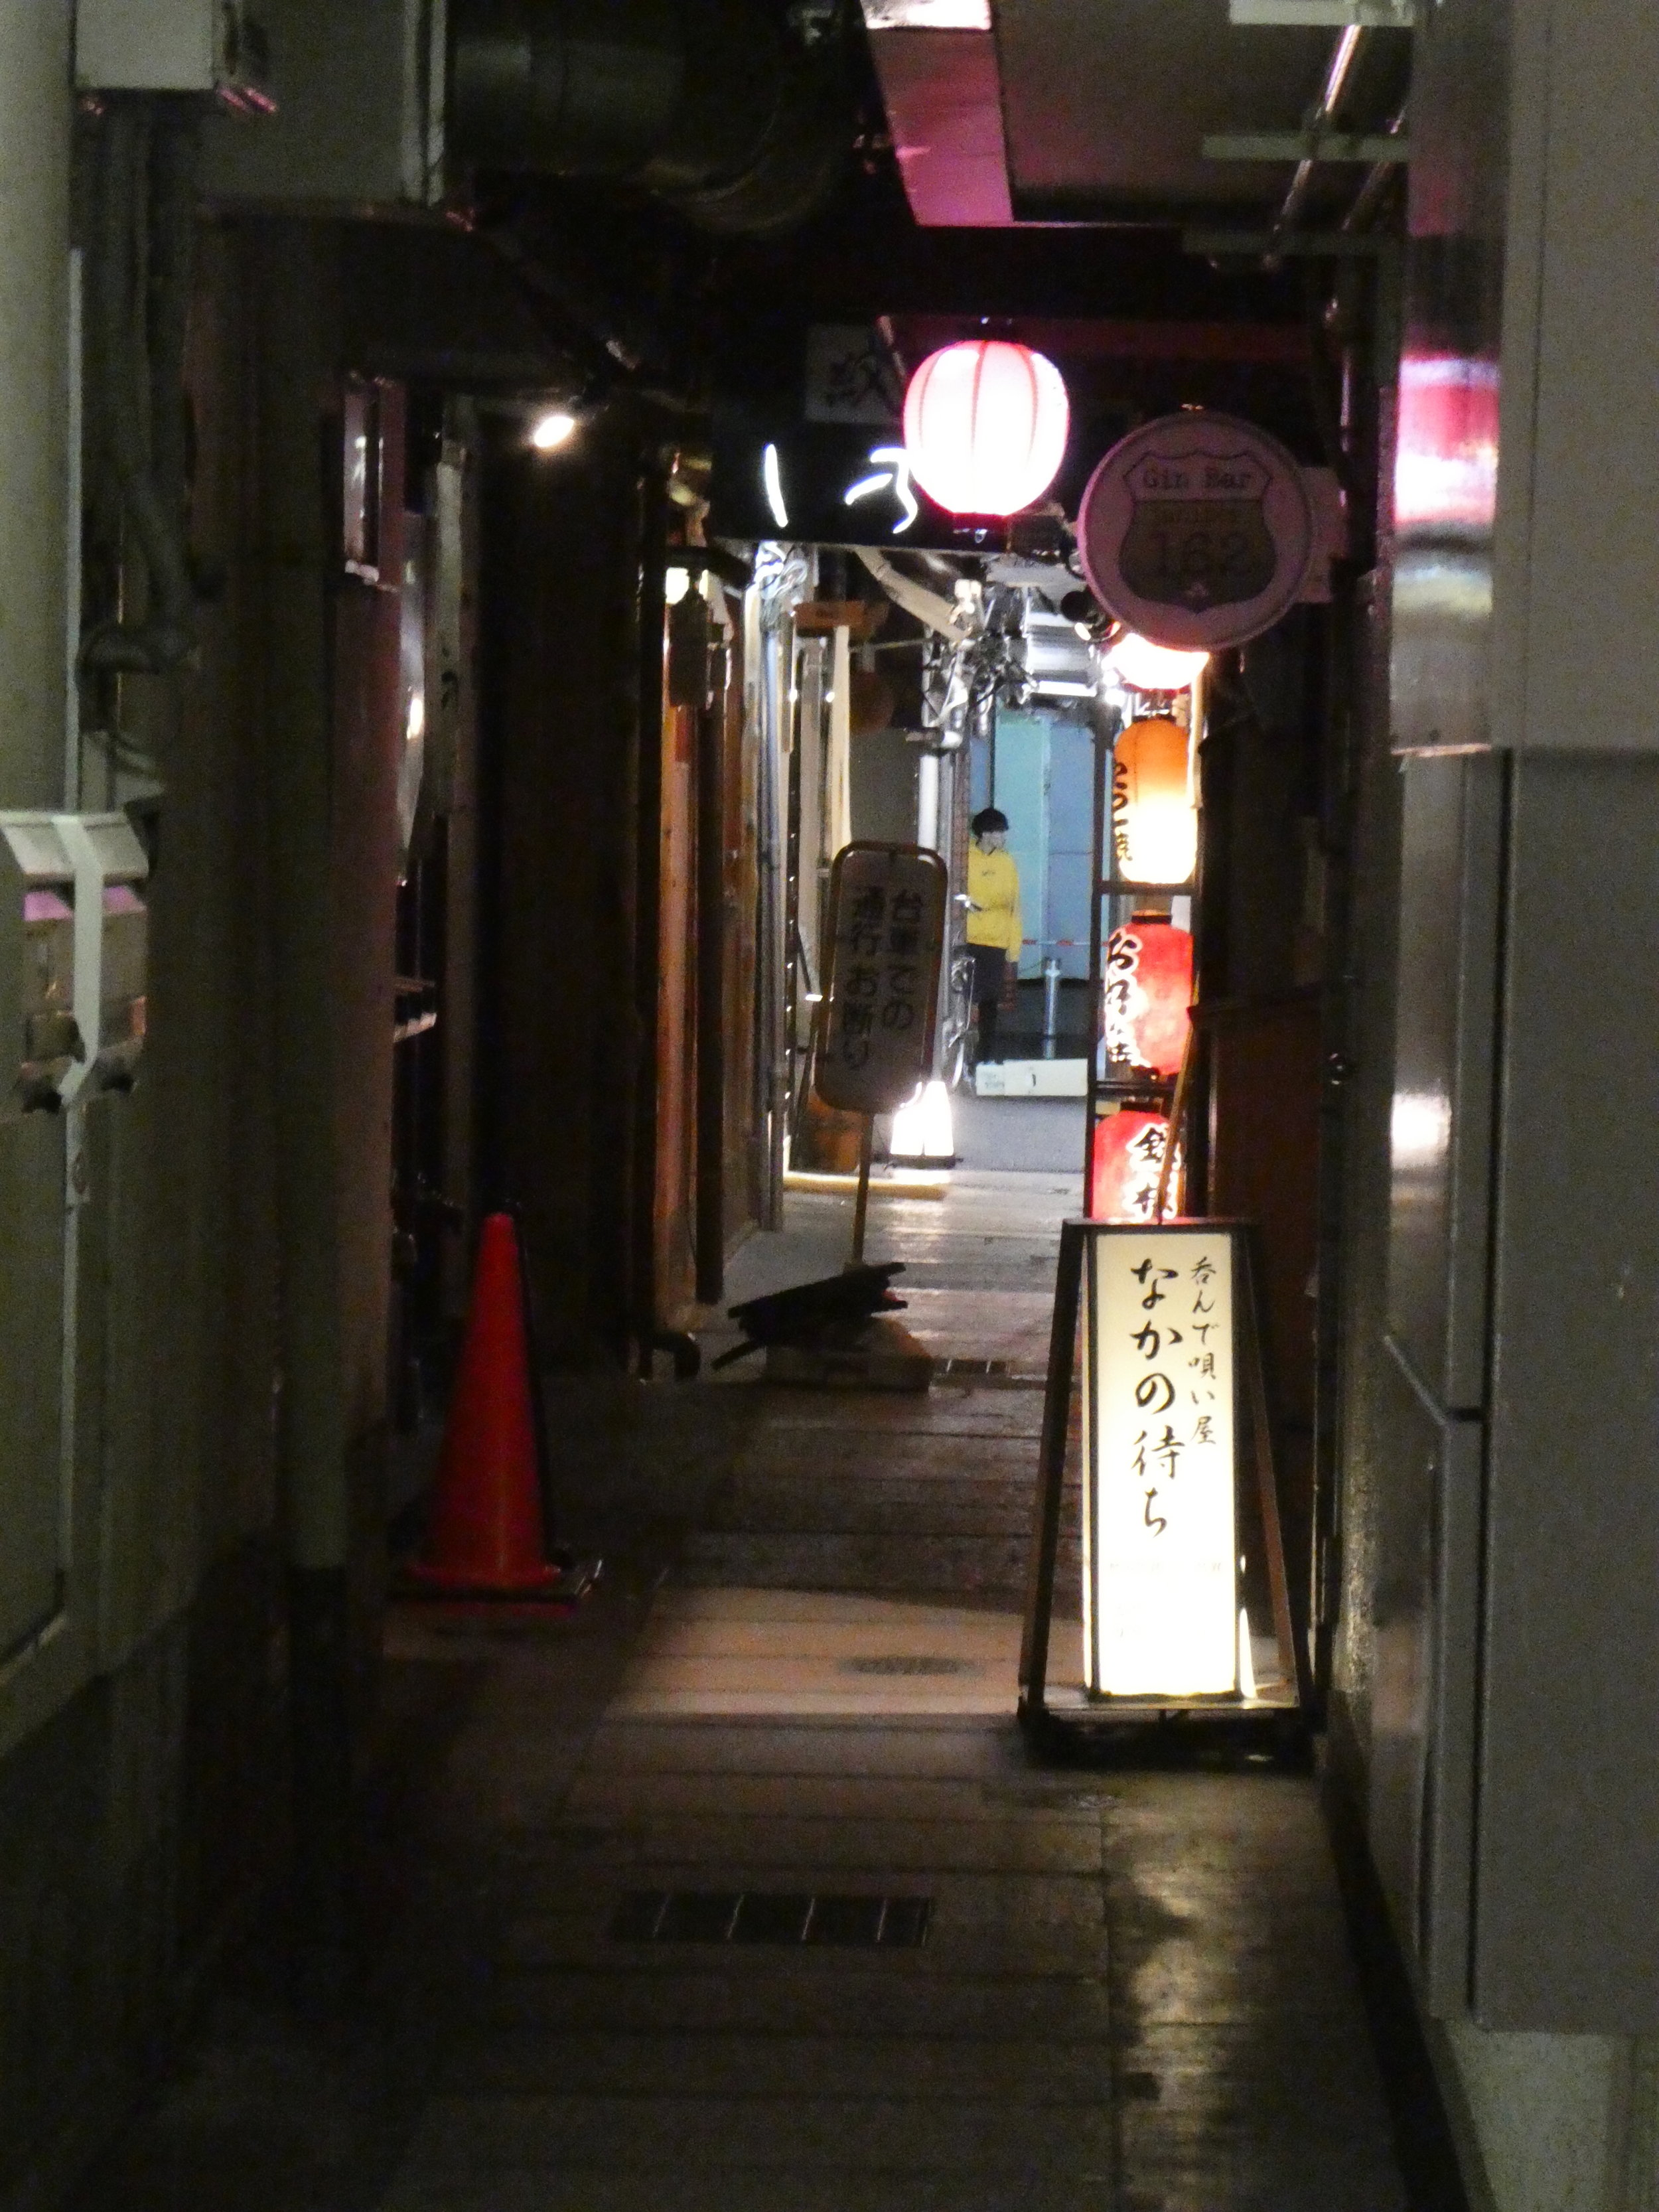 Many strange dark corridors in an area of Kyoto filled with restaurants and bars.